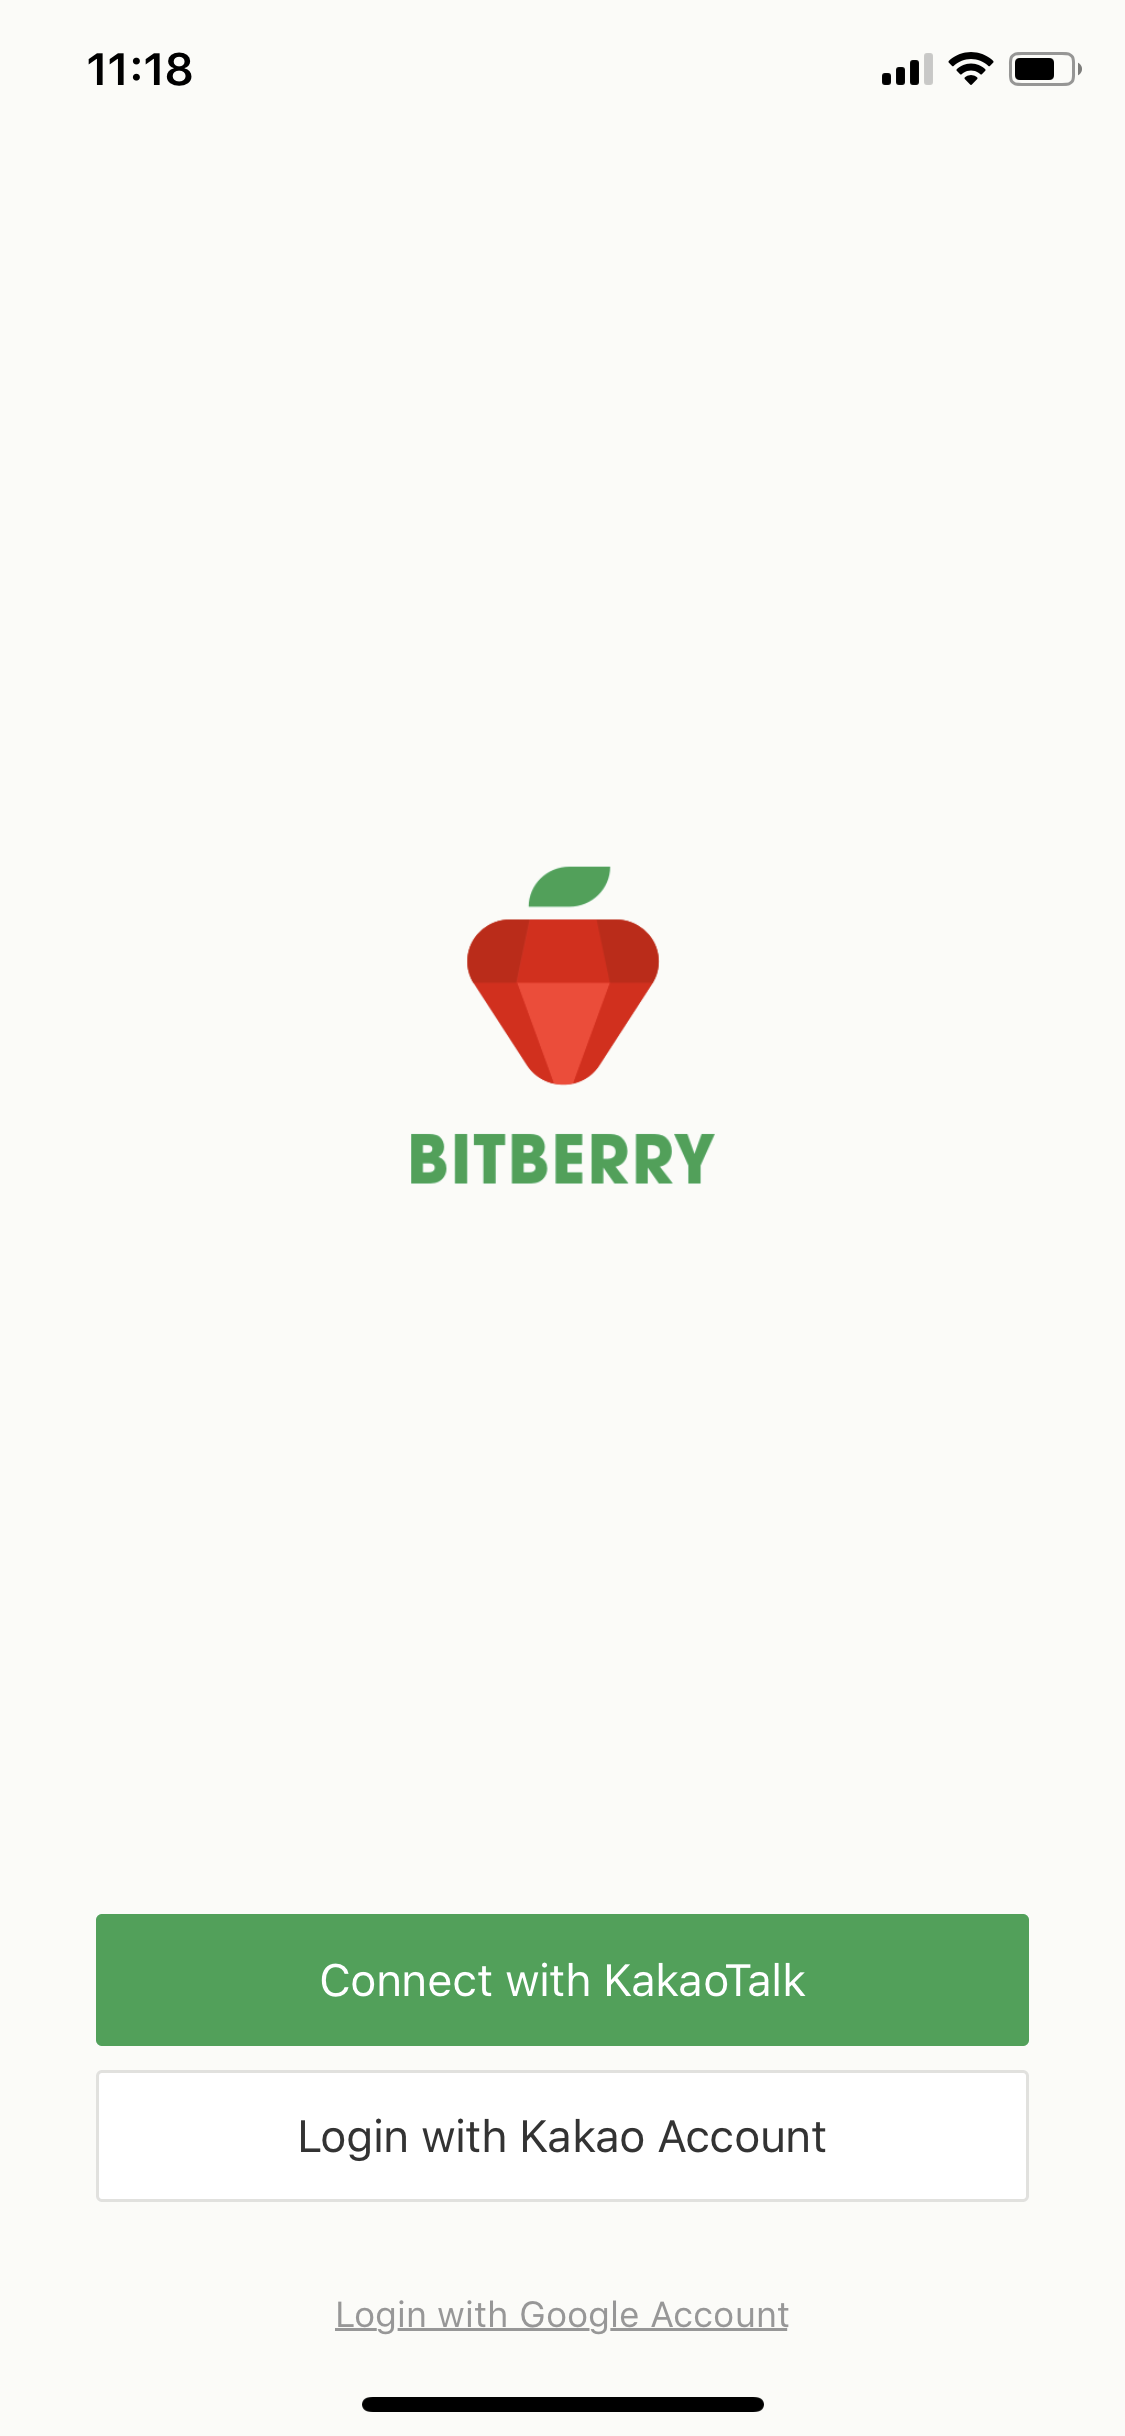 2. Bitberry log-in page